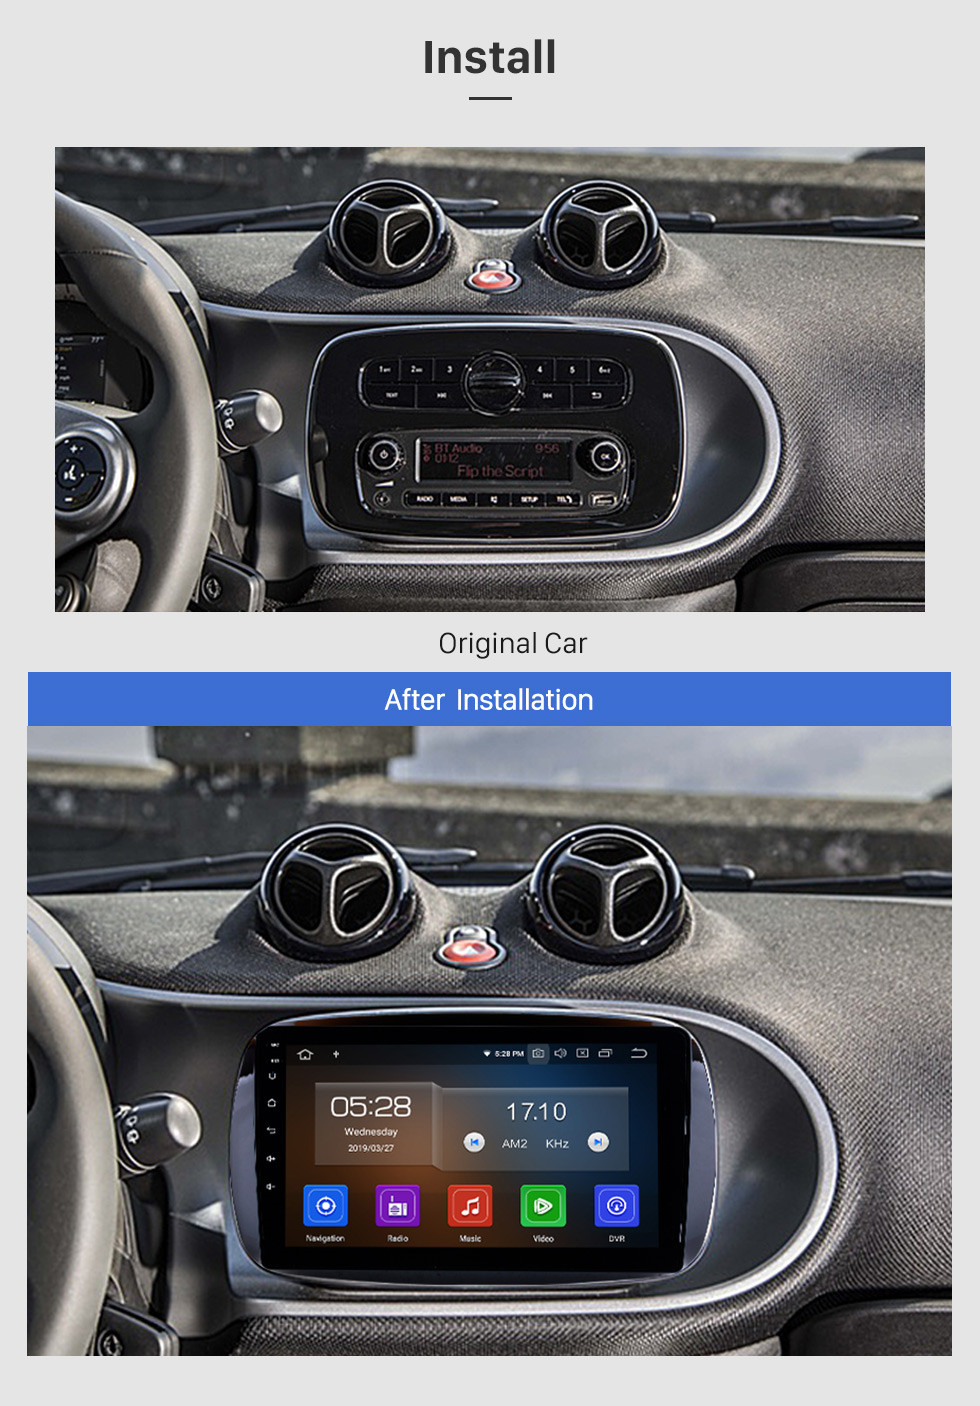 Seicane 9 Inch 2015 2016 Mercedes-Benz SMART Fortwo Android 10.0 GPS Navigation system Radio Capacitive Touch Screen TPMS DVR OBD II Rear camera AUX USB 3G WiFi Steering Wheel Control HD 1080P Video Bluetooth